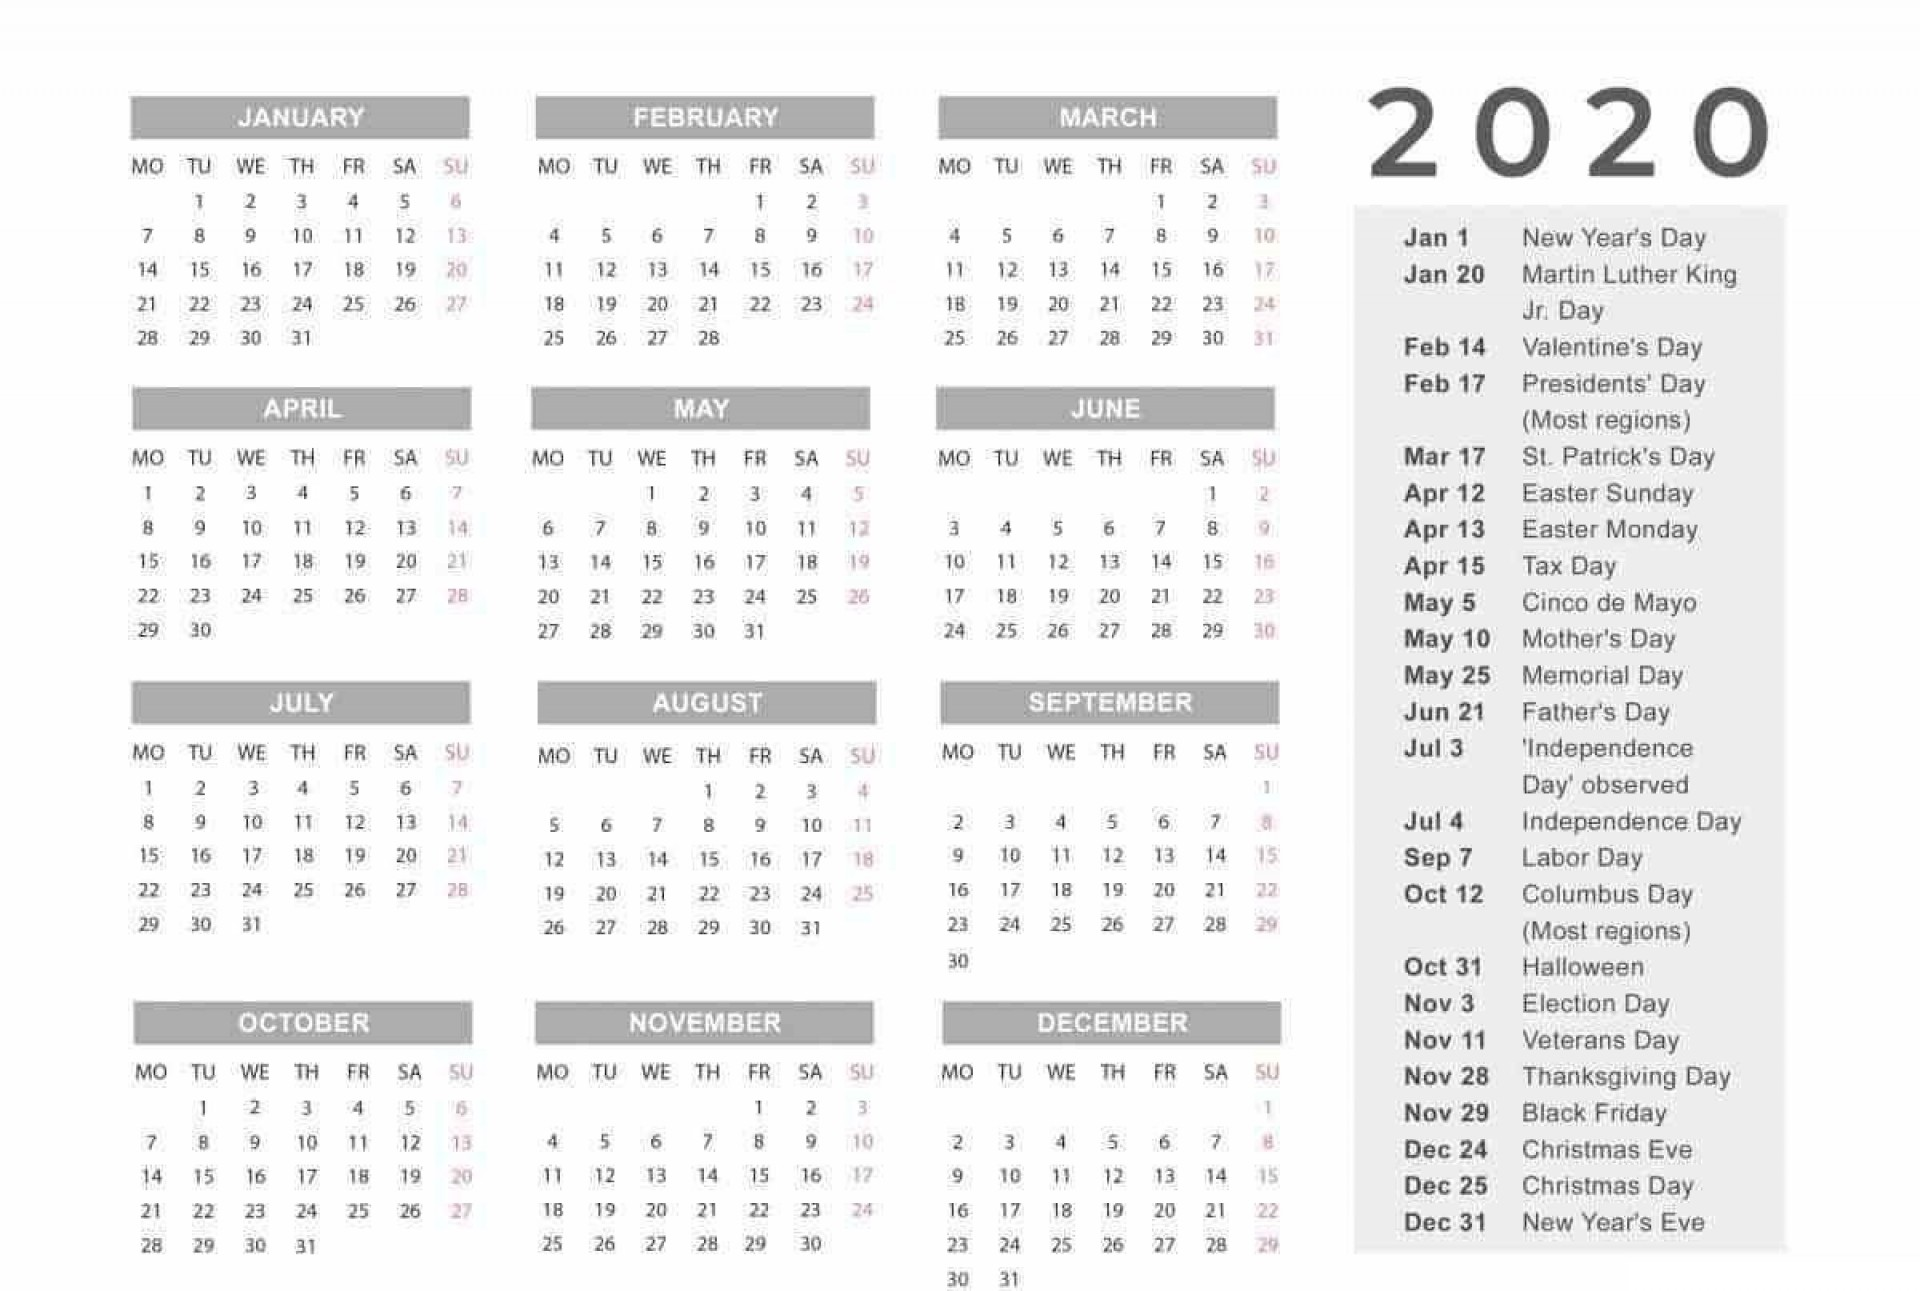 006 Unforgettable 2020 Yearly Calendar Template Image  Word Uk1920